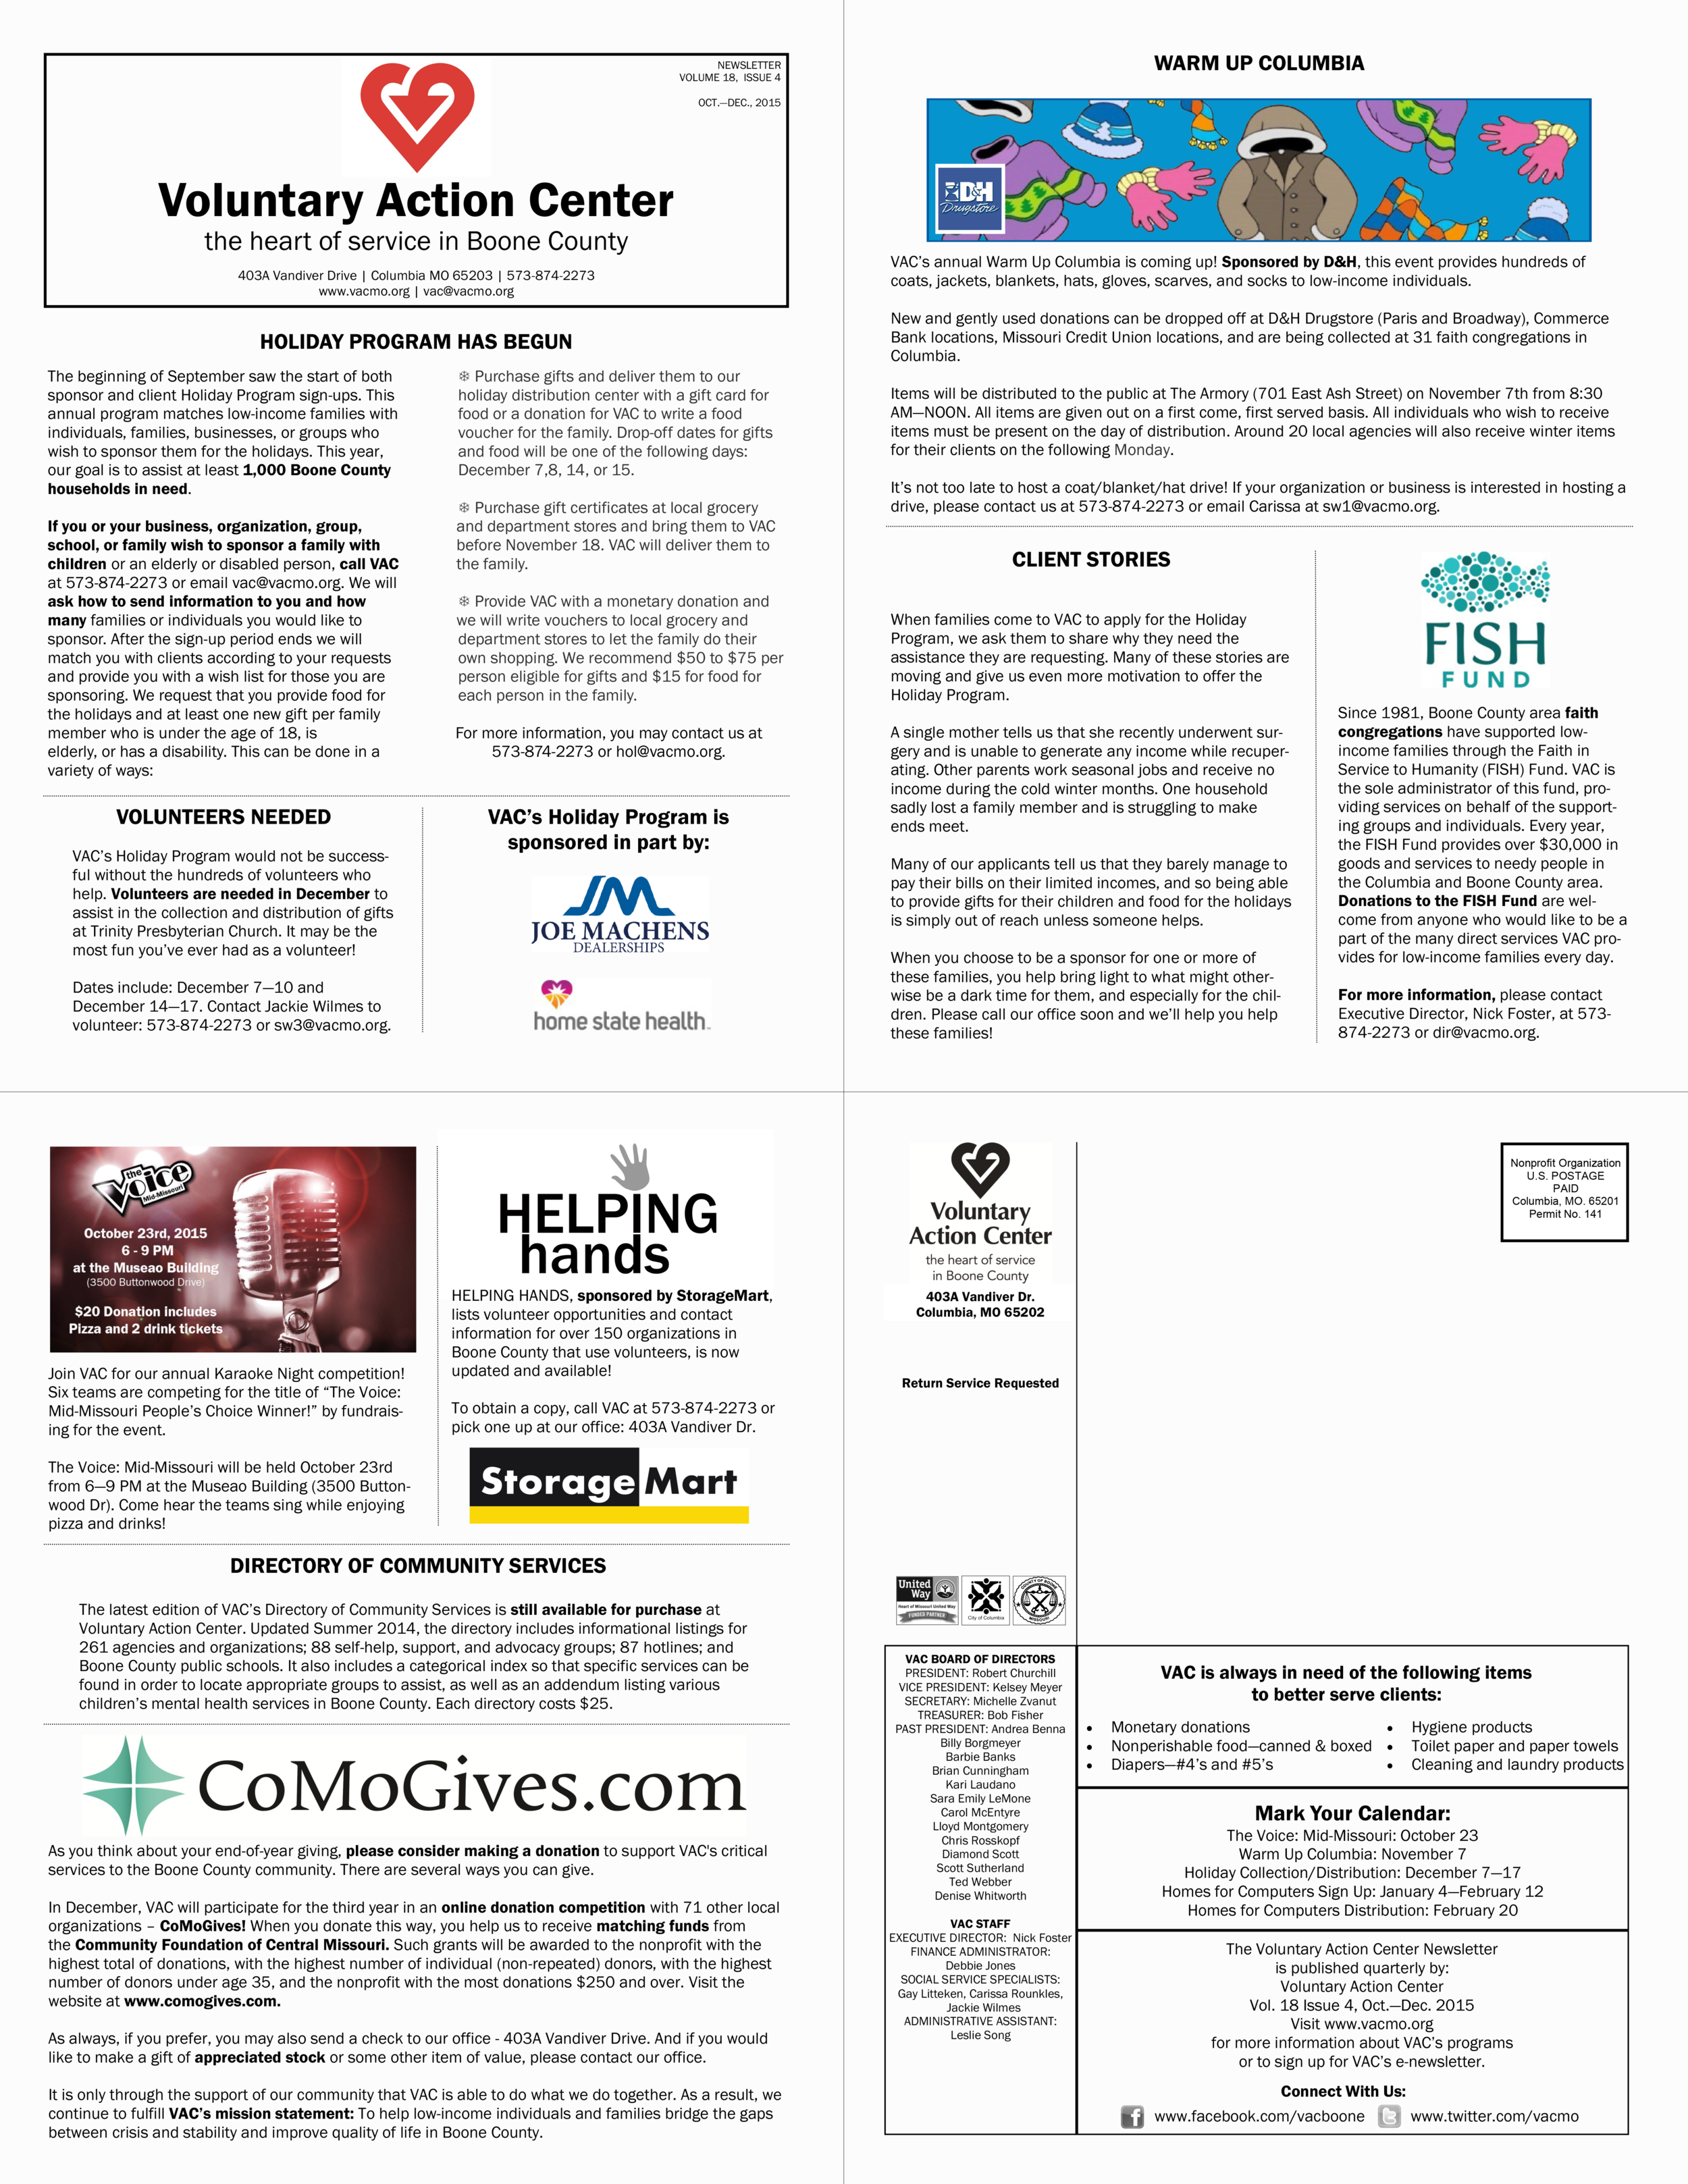 Newsletter designed for Voluntary Action Center sponsors and donors.